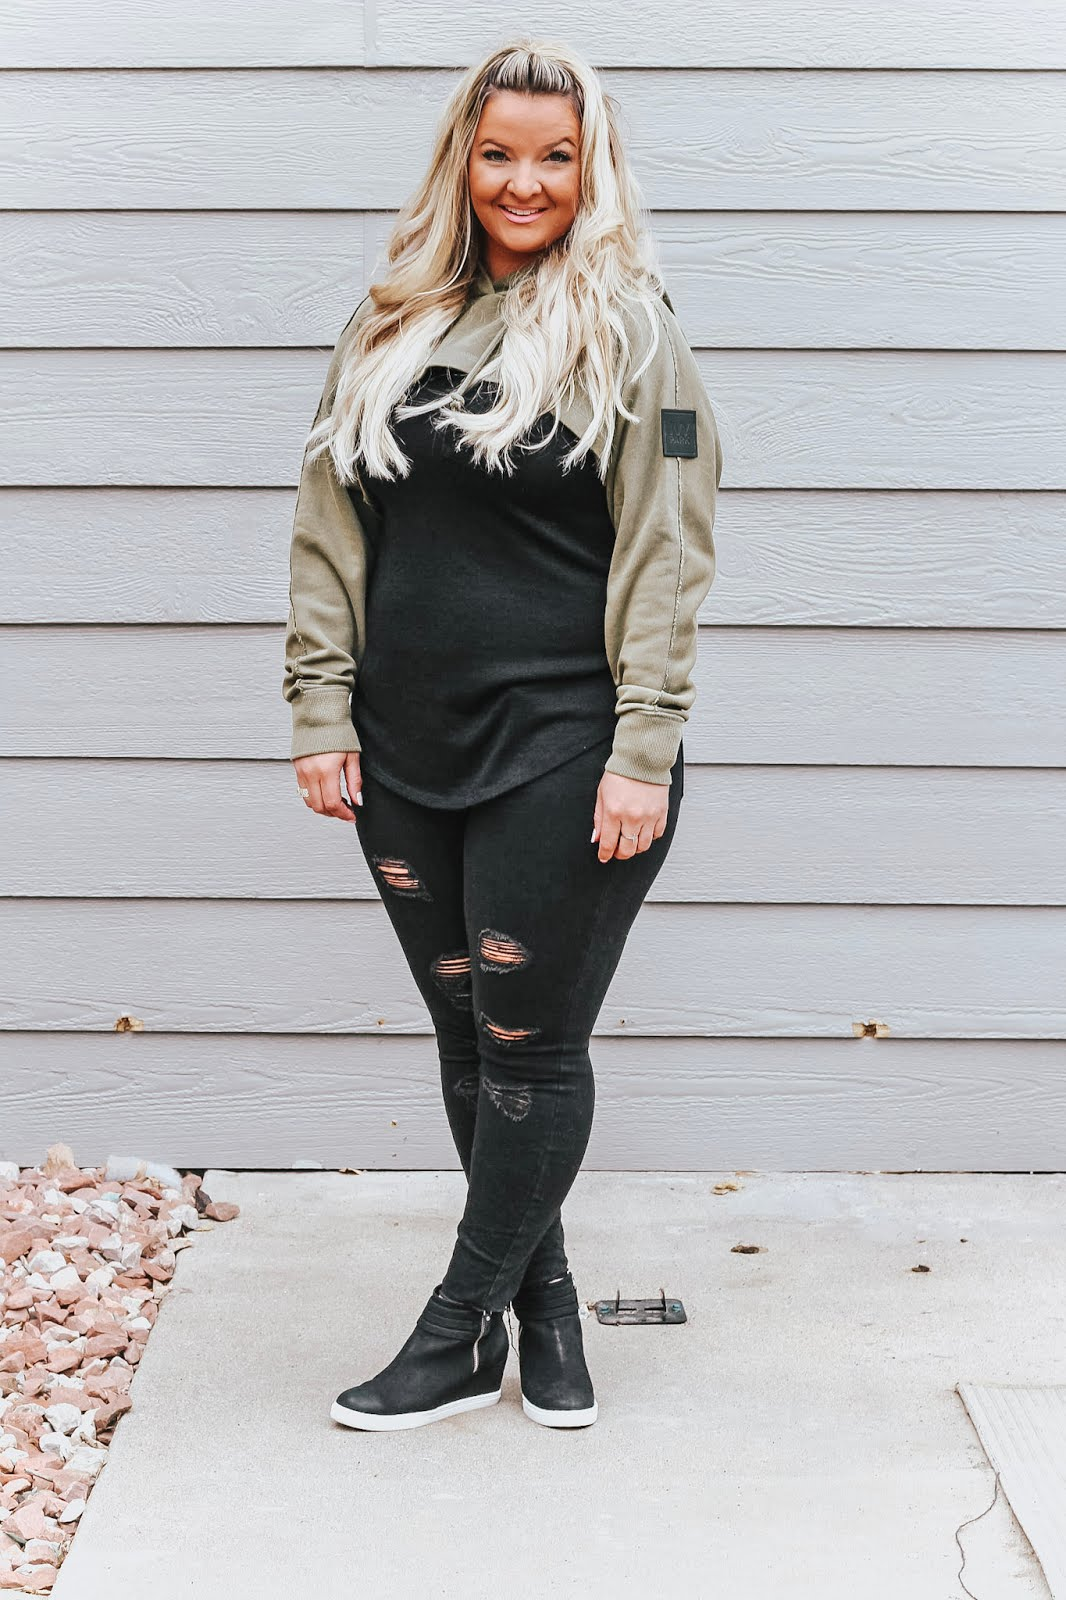 Cutaway Ivy Park Hoodie styled by popular Denver fashion blogger, Delayna Denaye